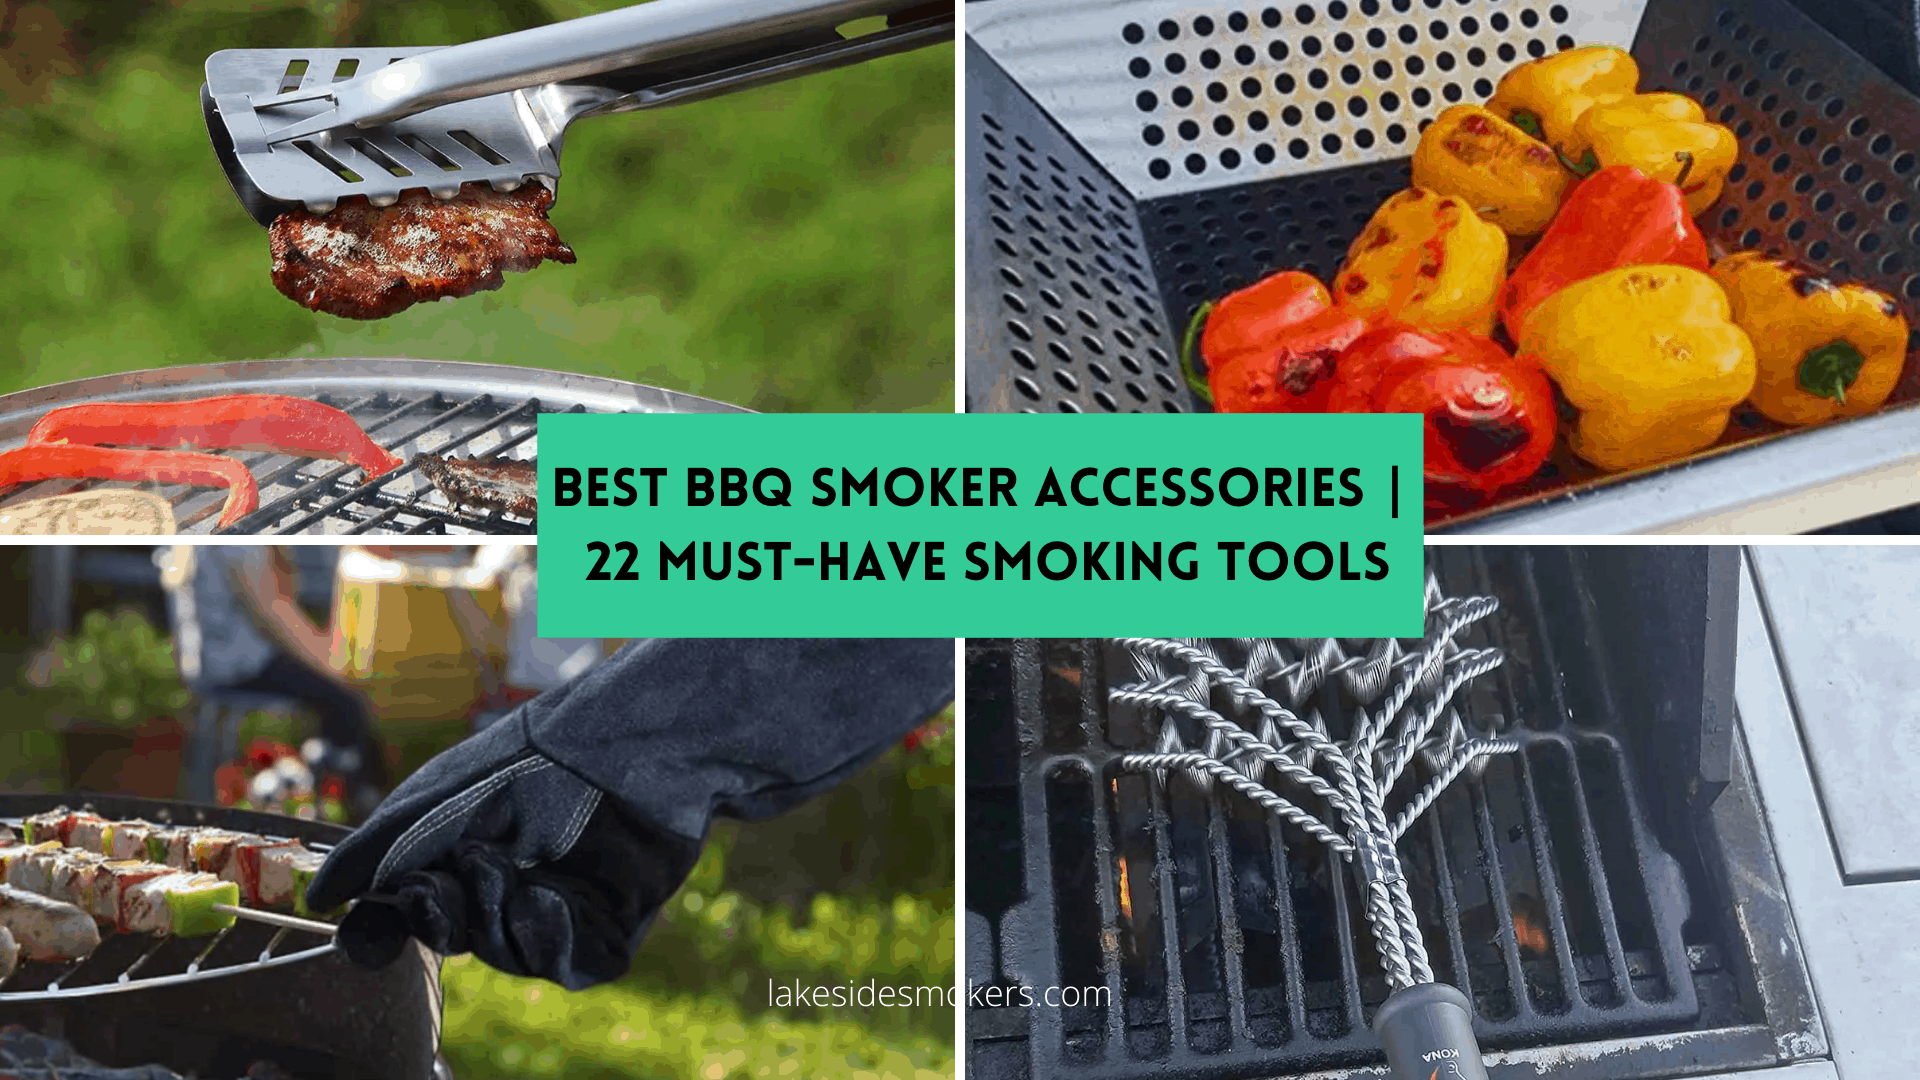 Best BBQ smoker accessories: 22 must-have smoking tools